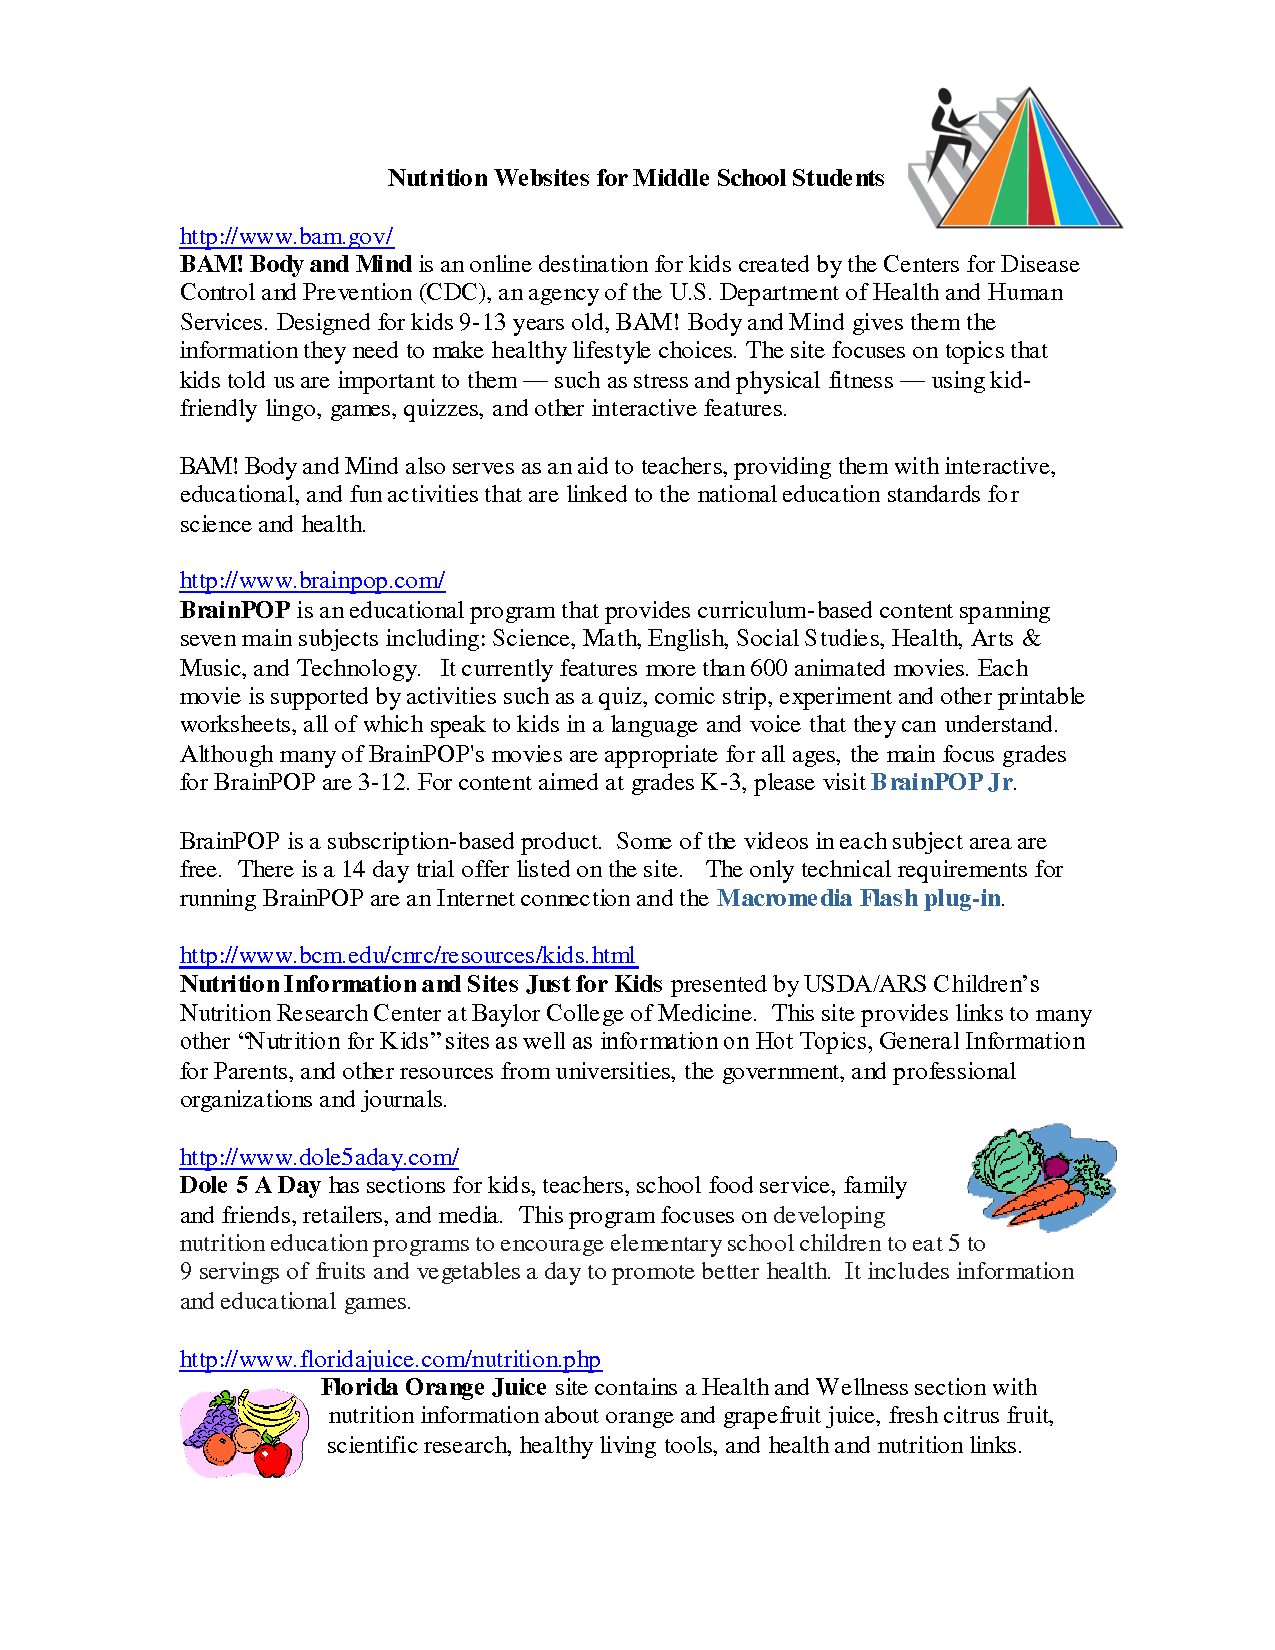 Printables Nutrition Worksheets For Middle School Ronleyba Worksheets Printables